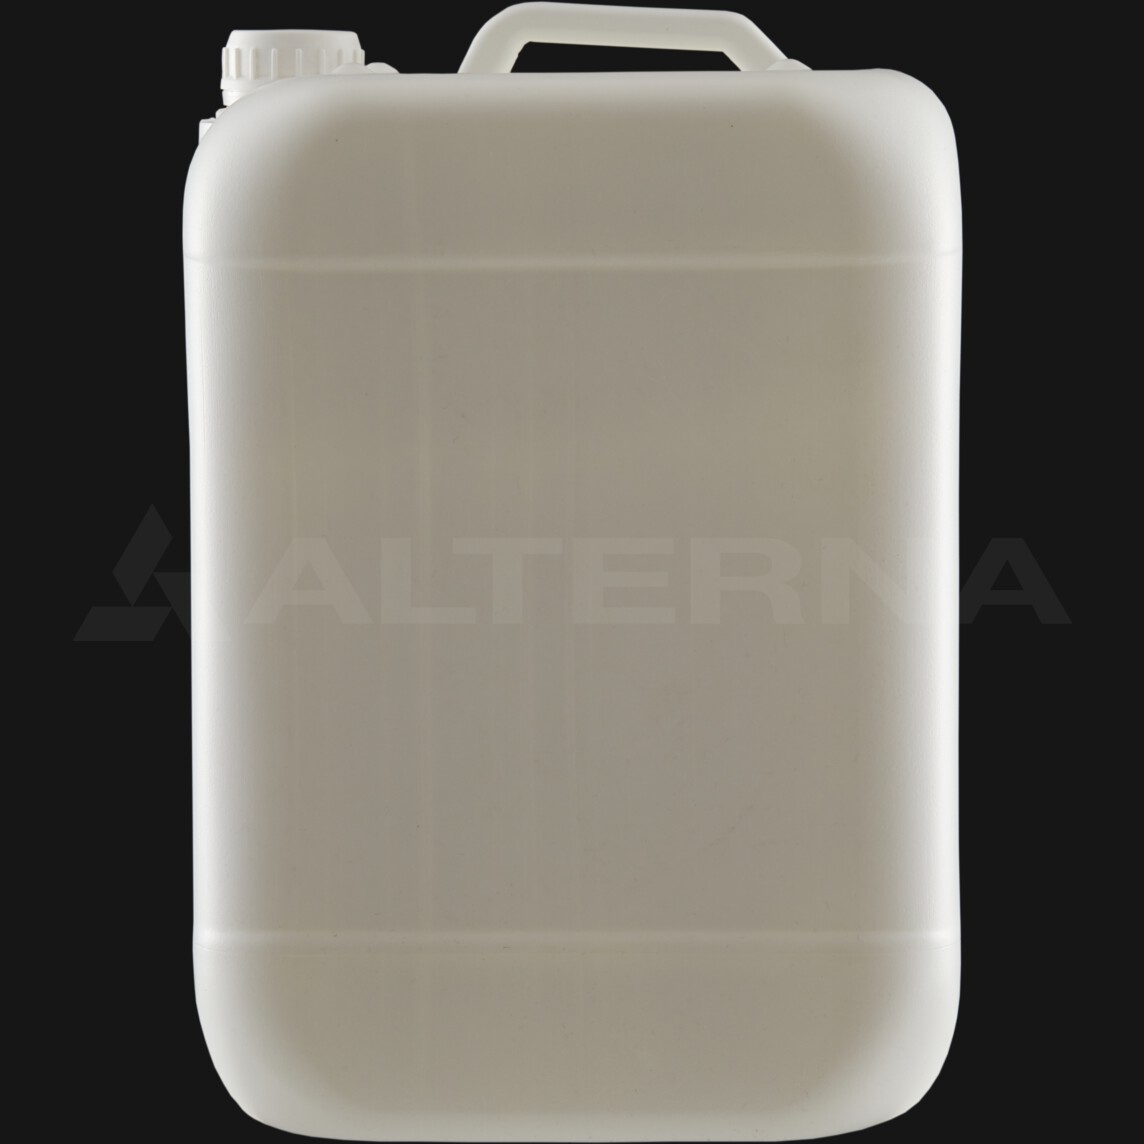 10 Liter HDPE Jerry Can with 38 mm Foam Seal Secure Cap